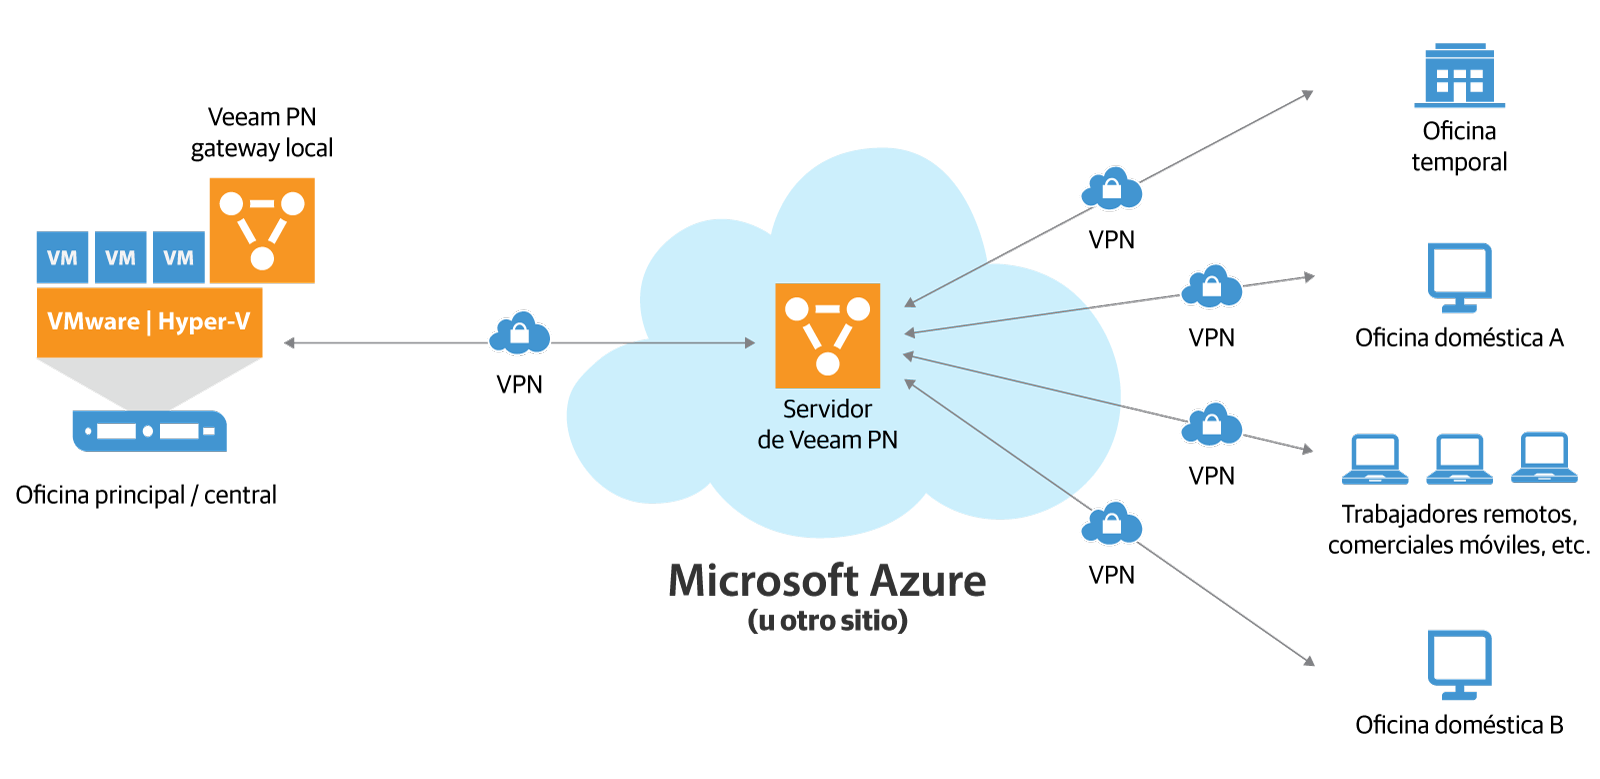 veeam_pn_for_microsoft_azure_es.png